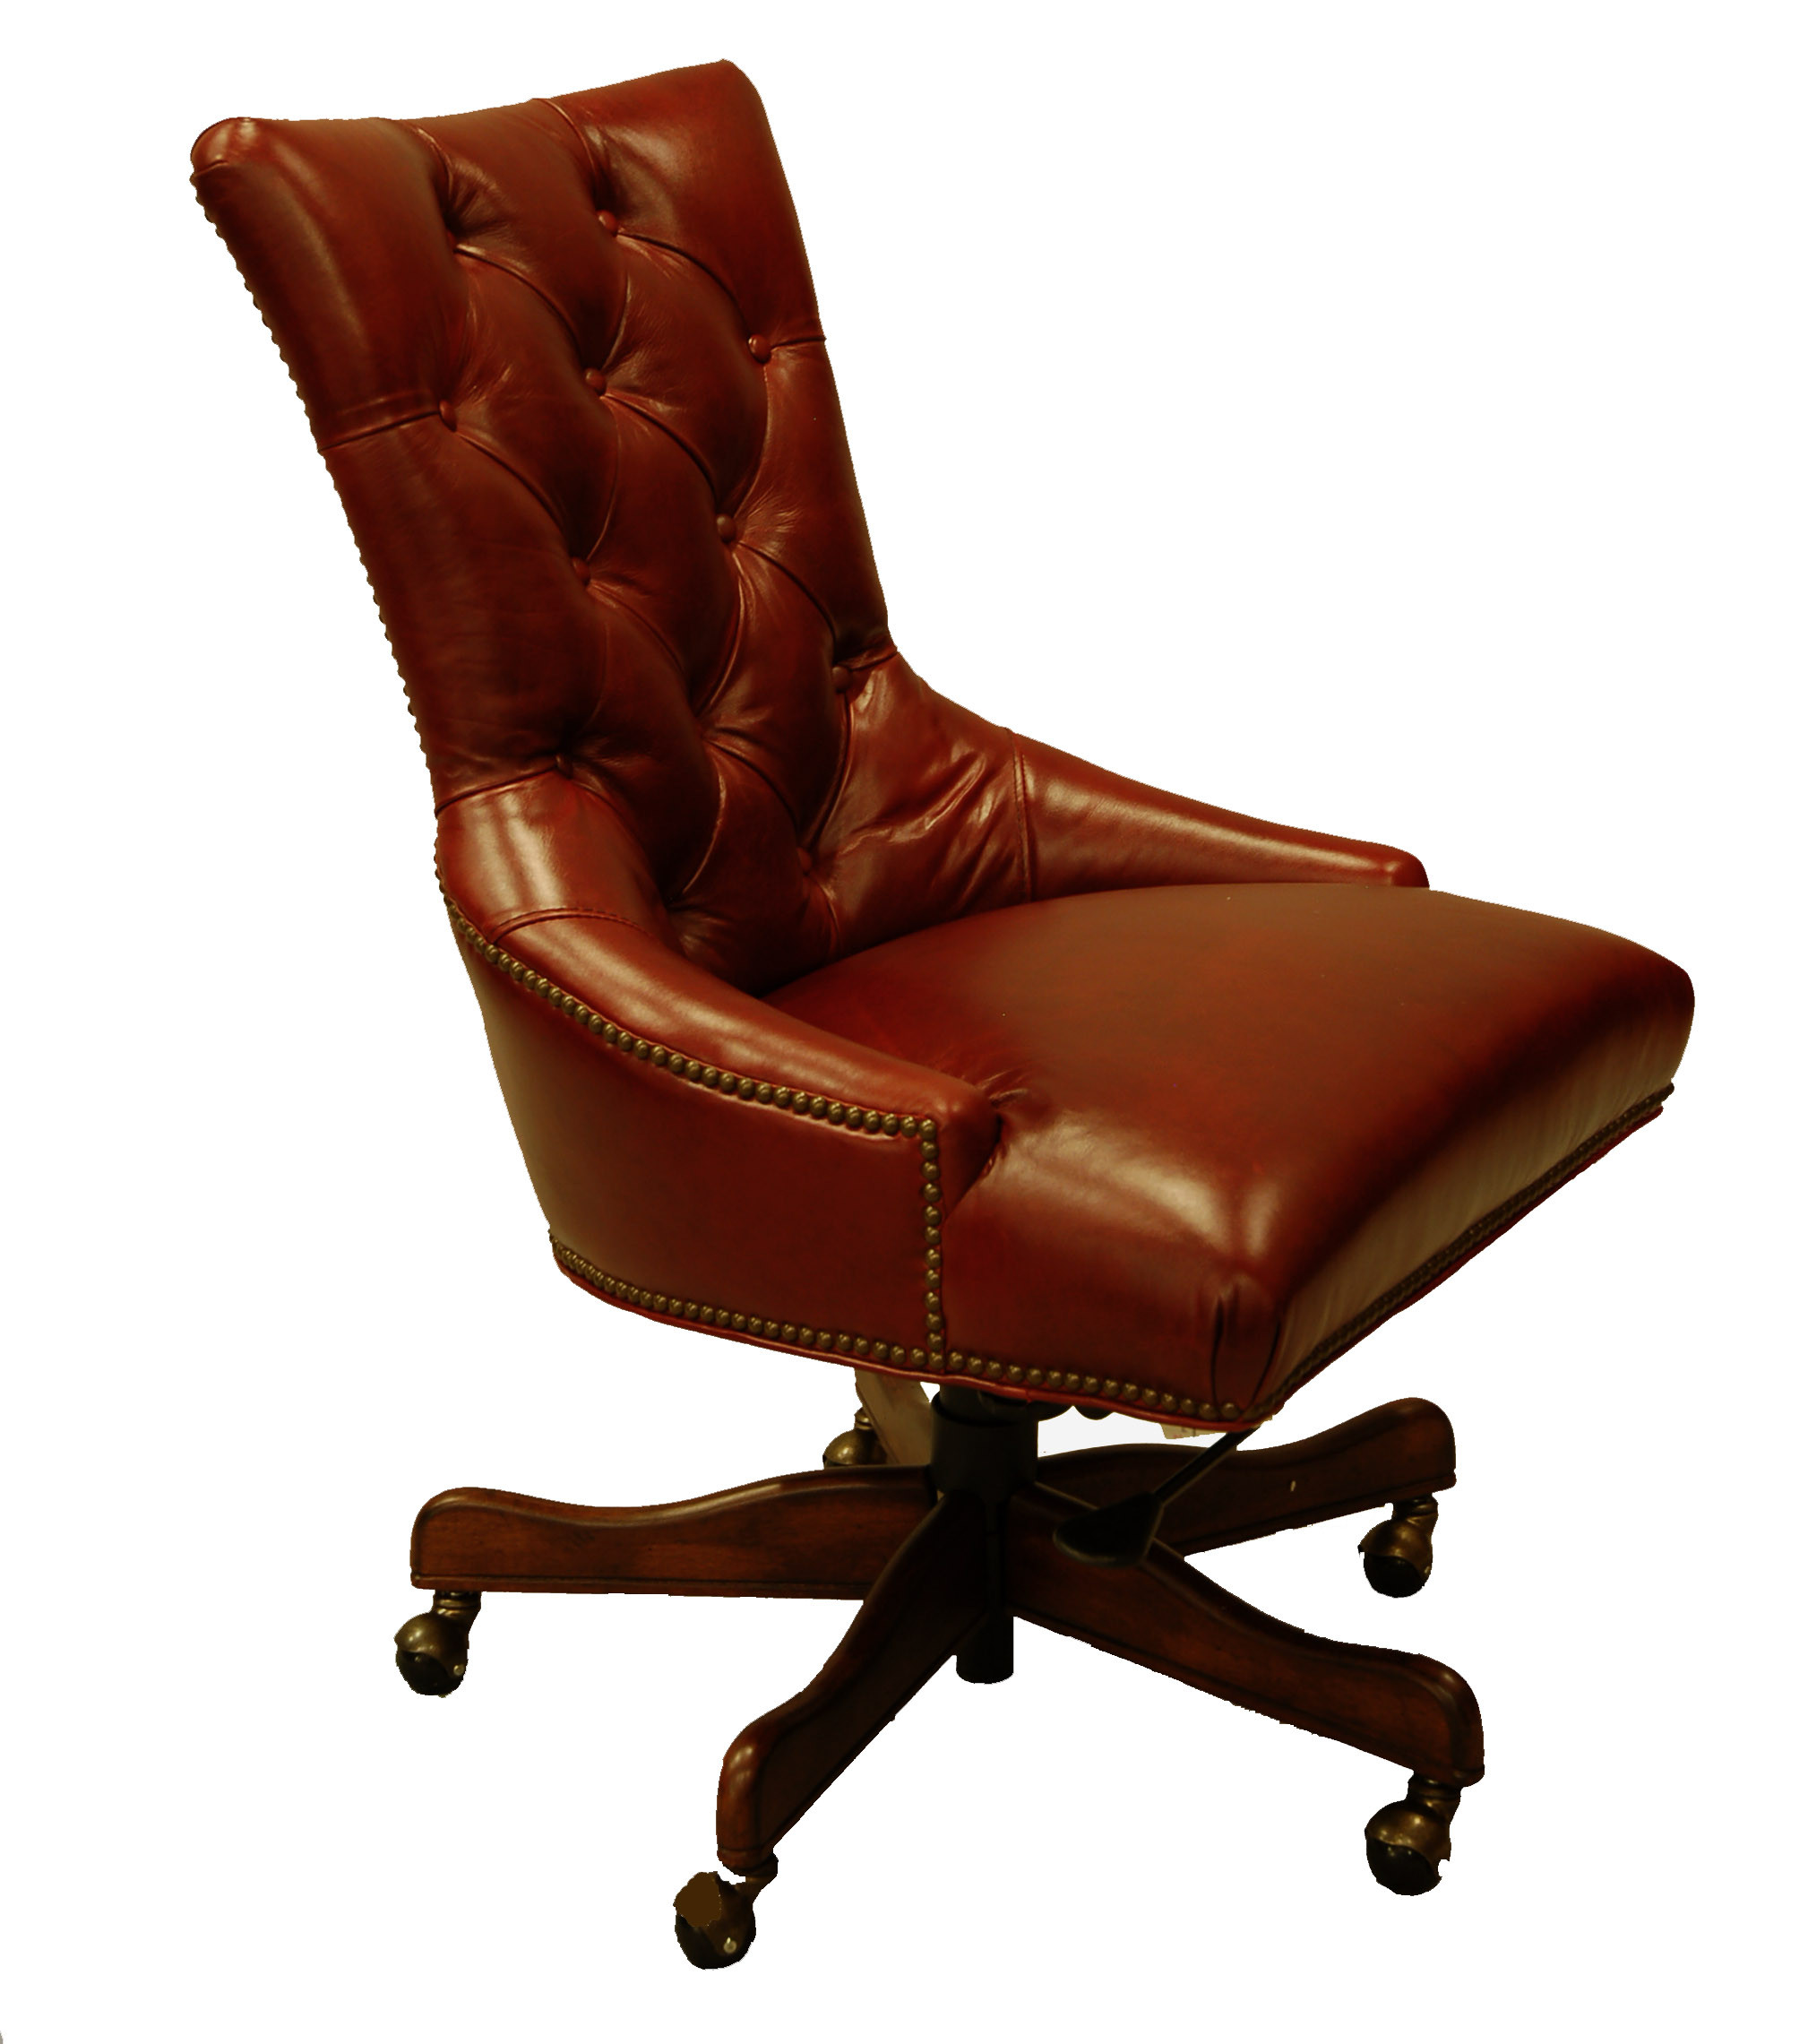 Best ideas about Leather Office Chair . Save or Pin Red Leather Executive fice Desk Chair Now.